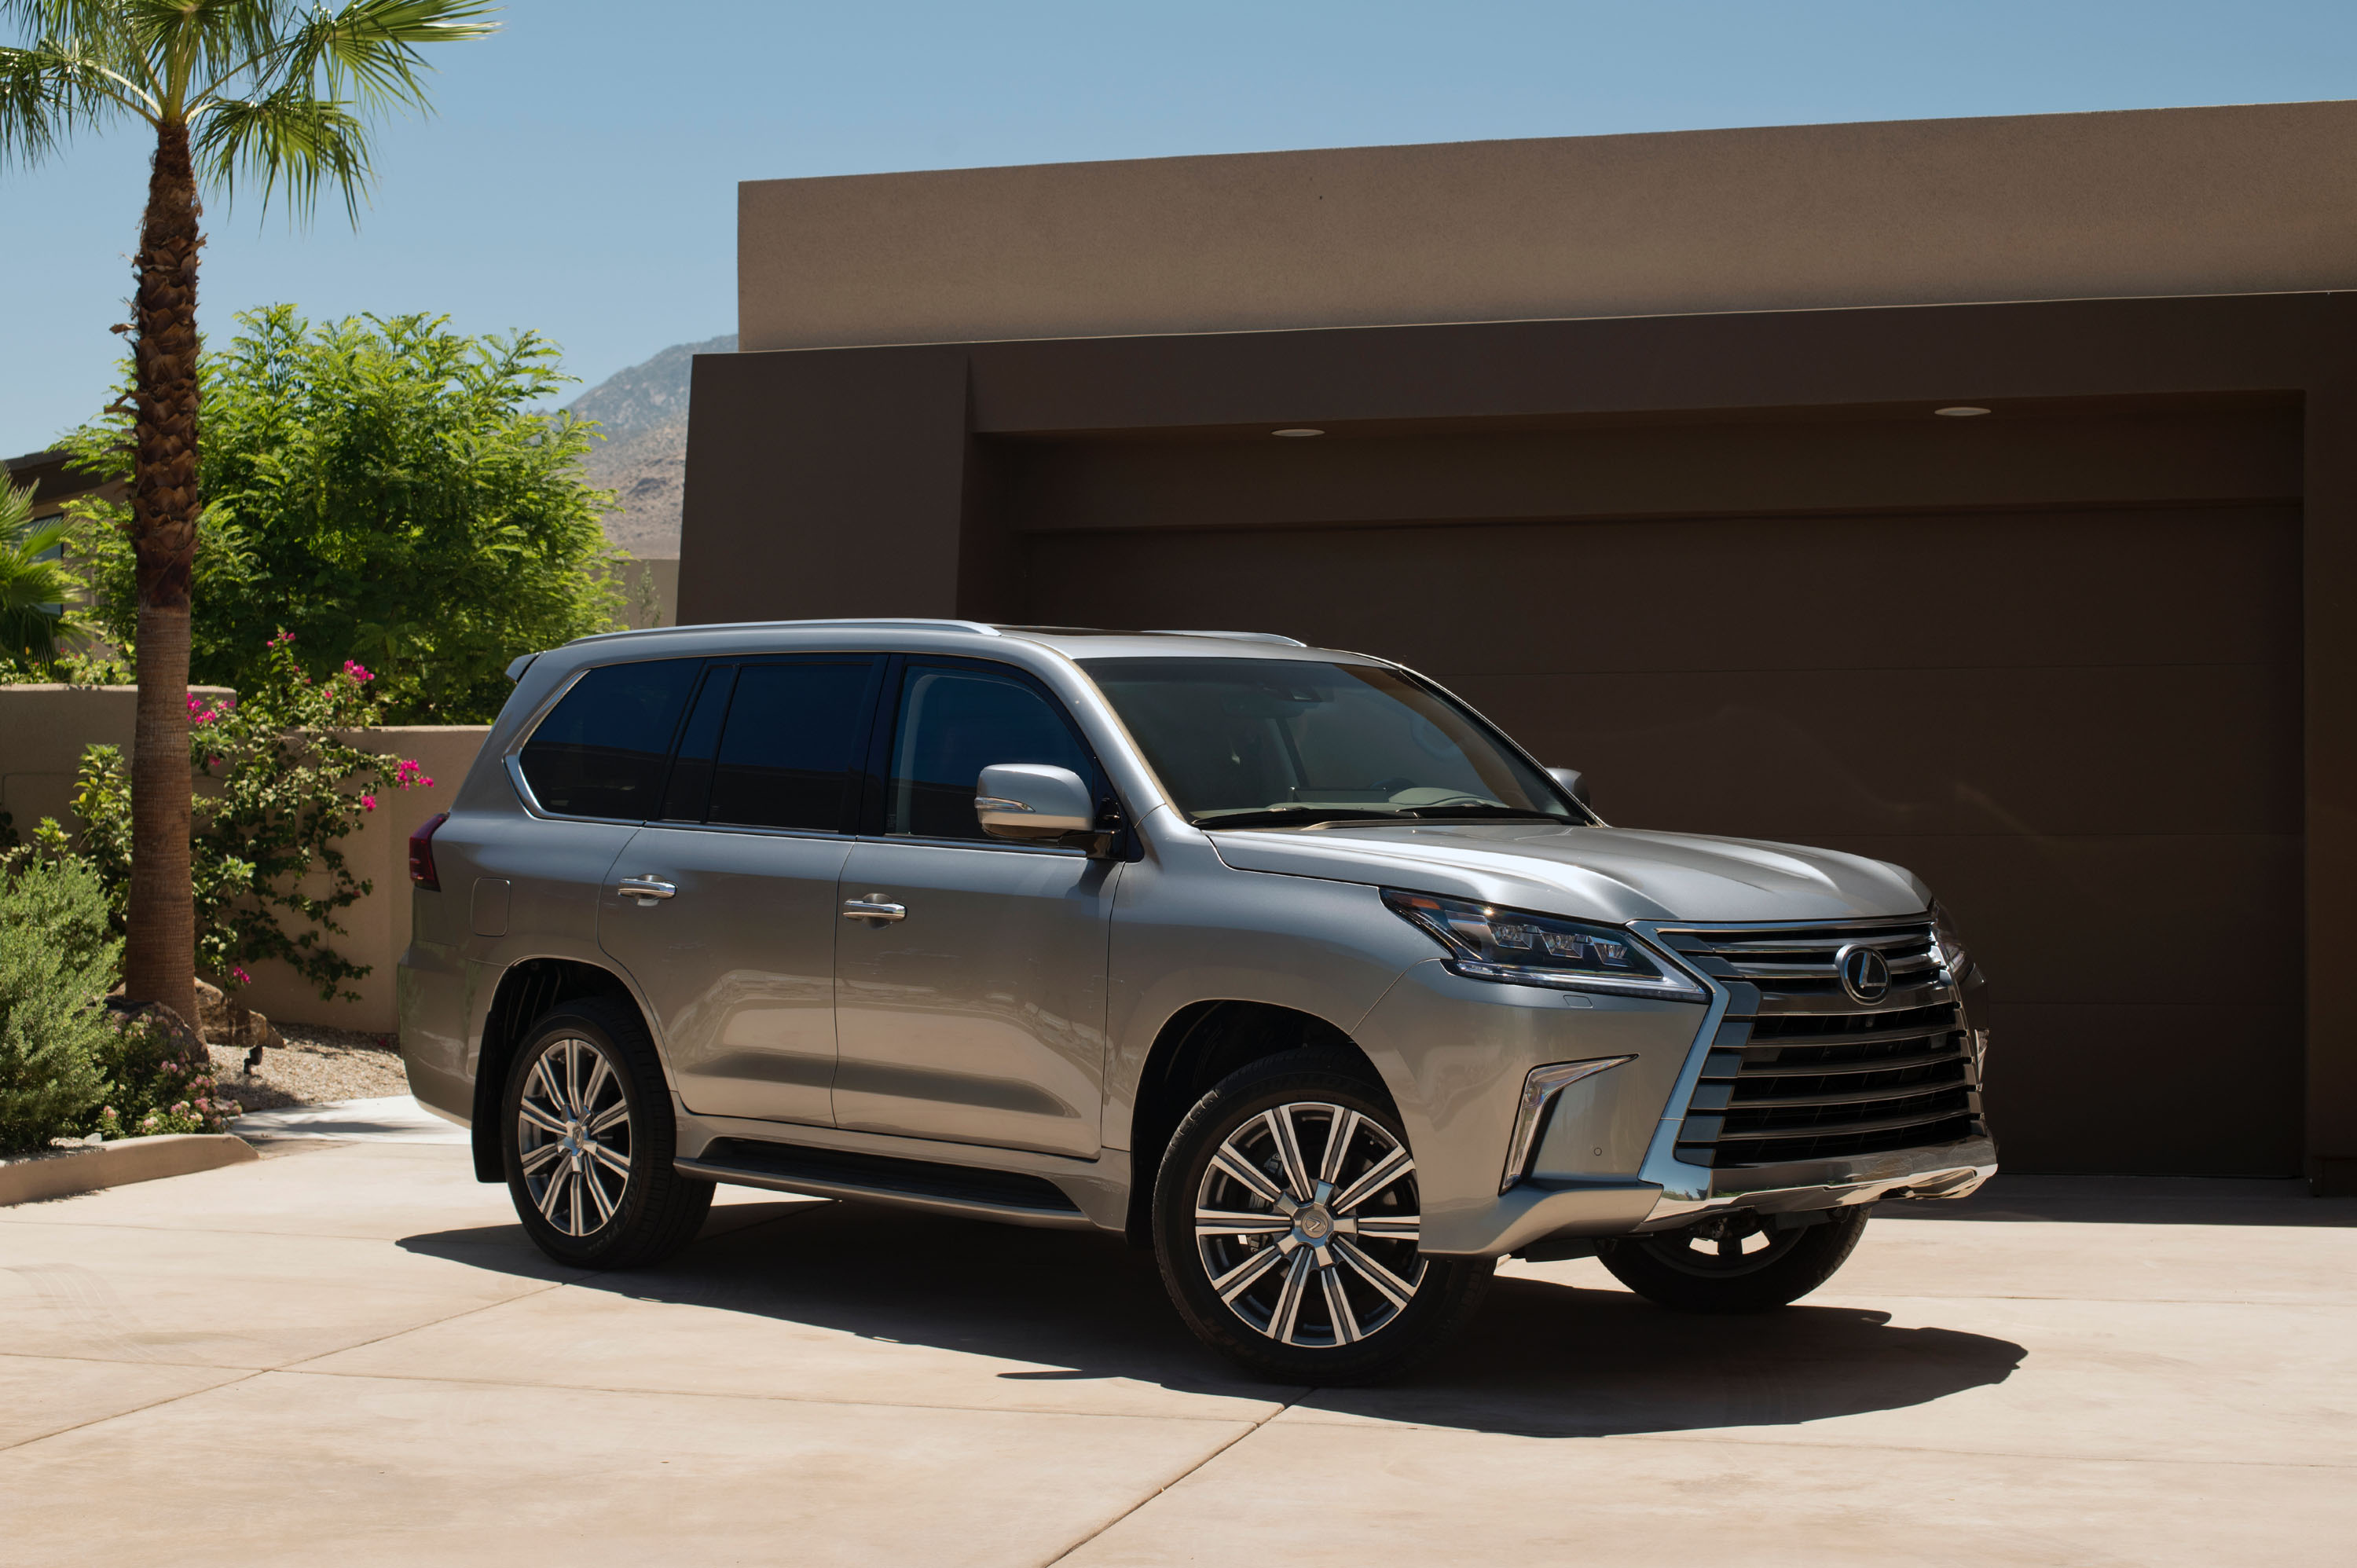 2016_Lexus_LX_570_001_86B88932544FBA8F31595E5D57B9DEF17824DA36 Take A Look About 2009 Lexus Lx 570 with Fascinating Photos Cars Review